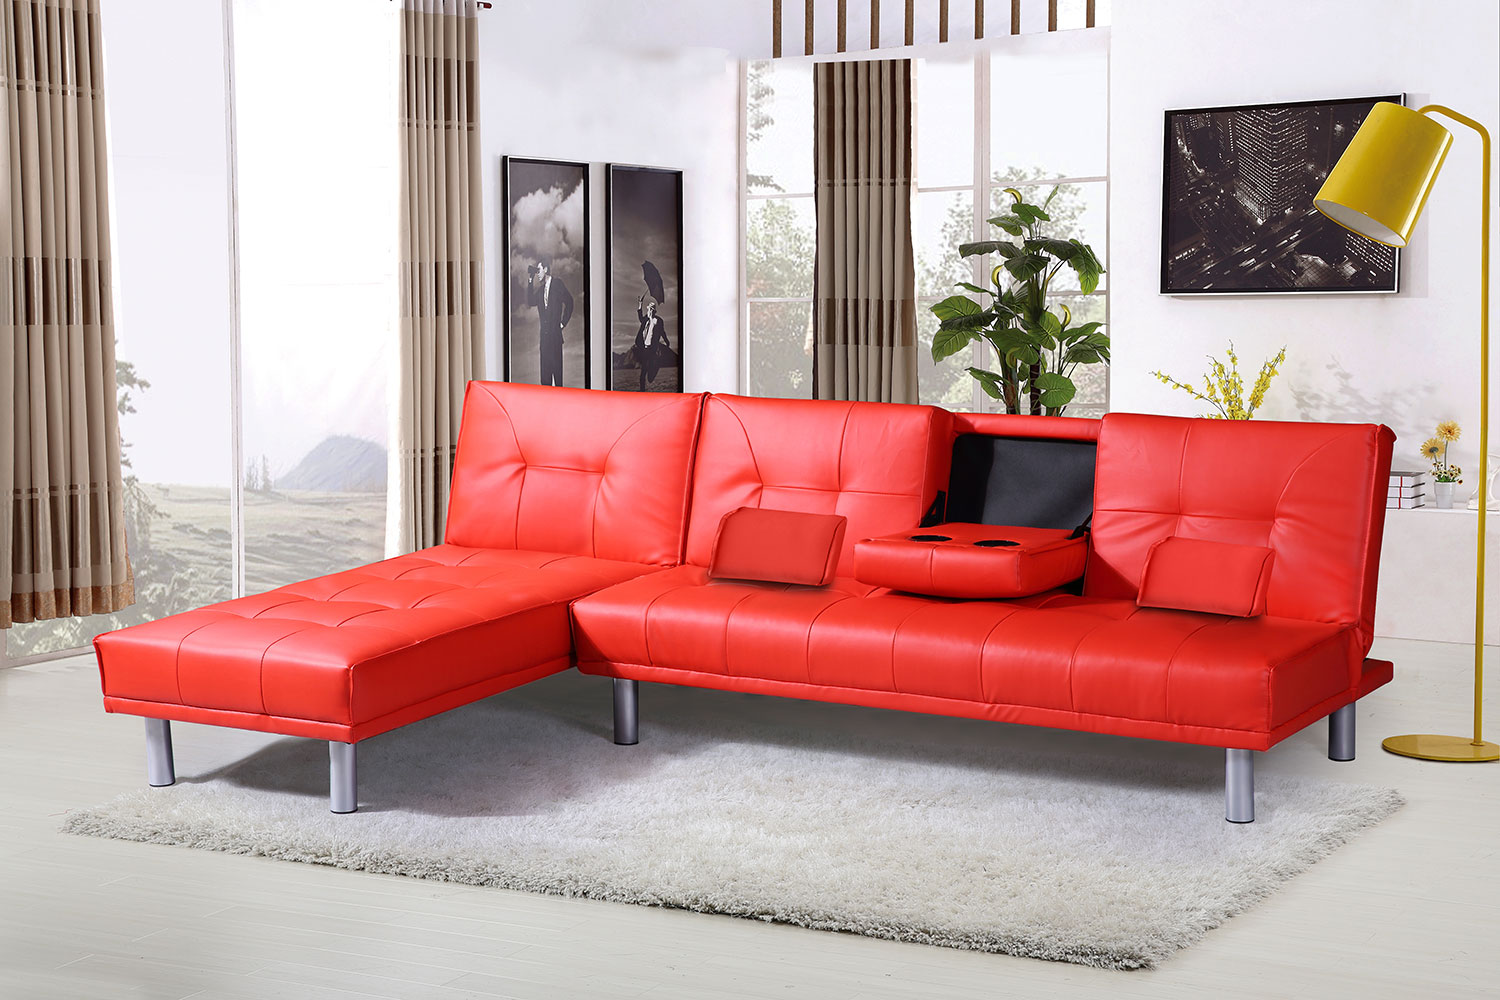 corner sofa bed new york ashley furniture loveseat modern 4 seater l shaped faux leather